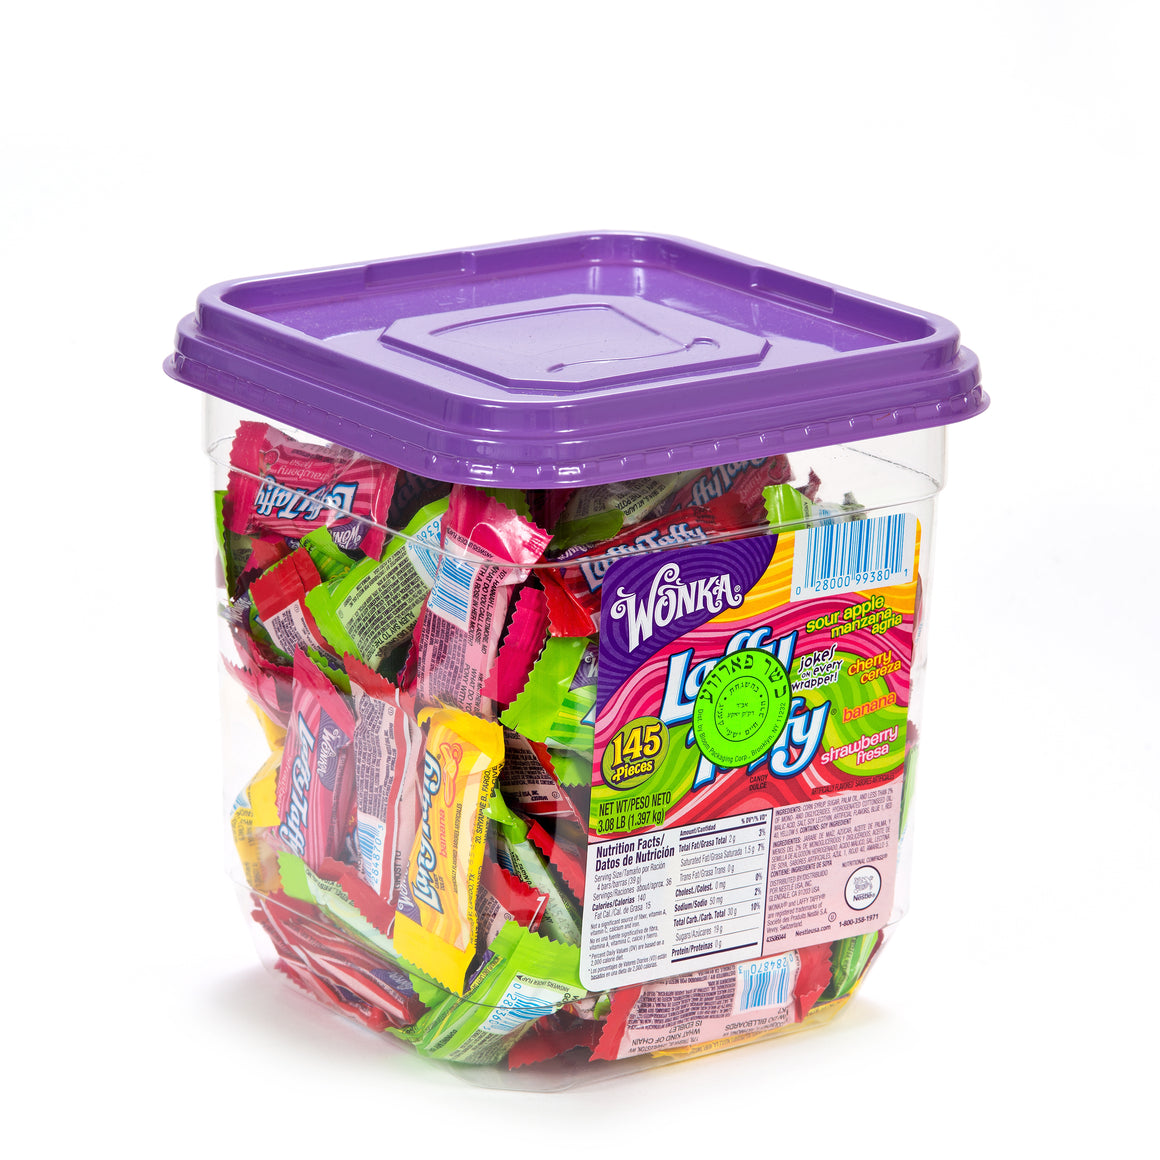 Blooms Laffy Taffy Variety Pack 145 Pieces 1.41kg